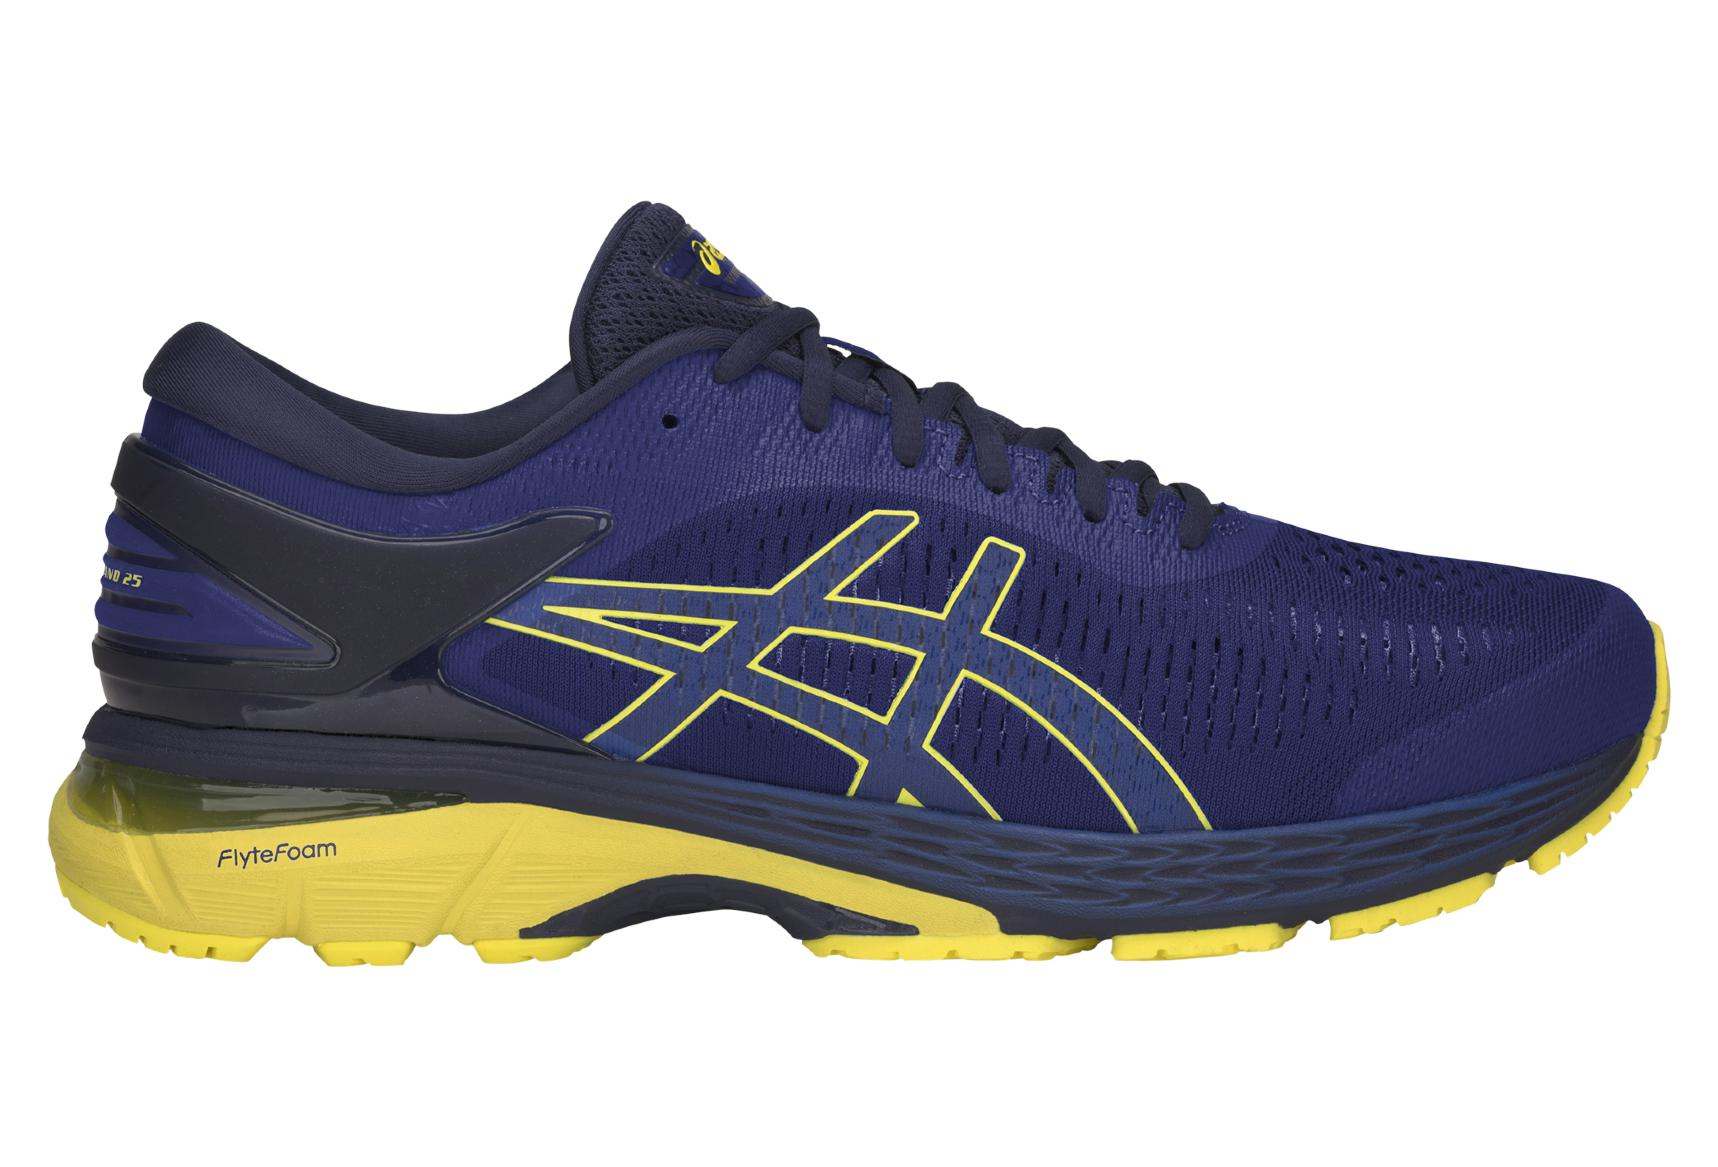 the best attitude e39f3 4ffc4 Scarpe Asics Run Gel Kayano 25 Blu Giallo